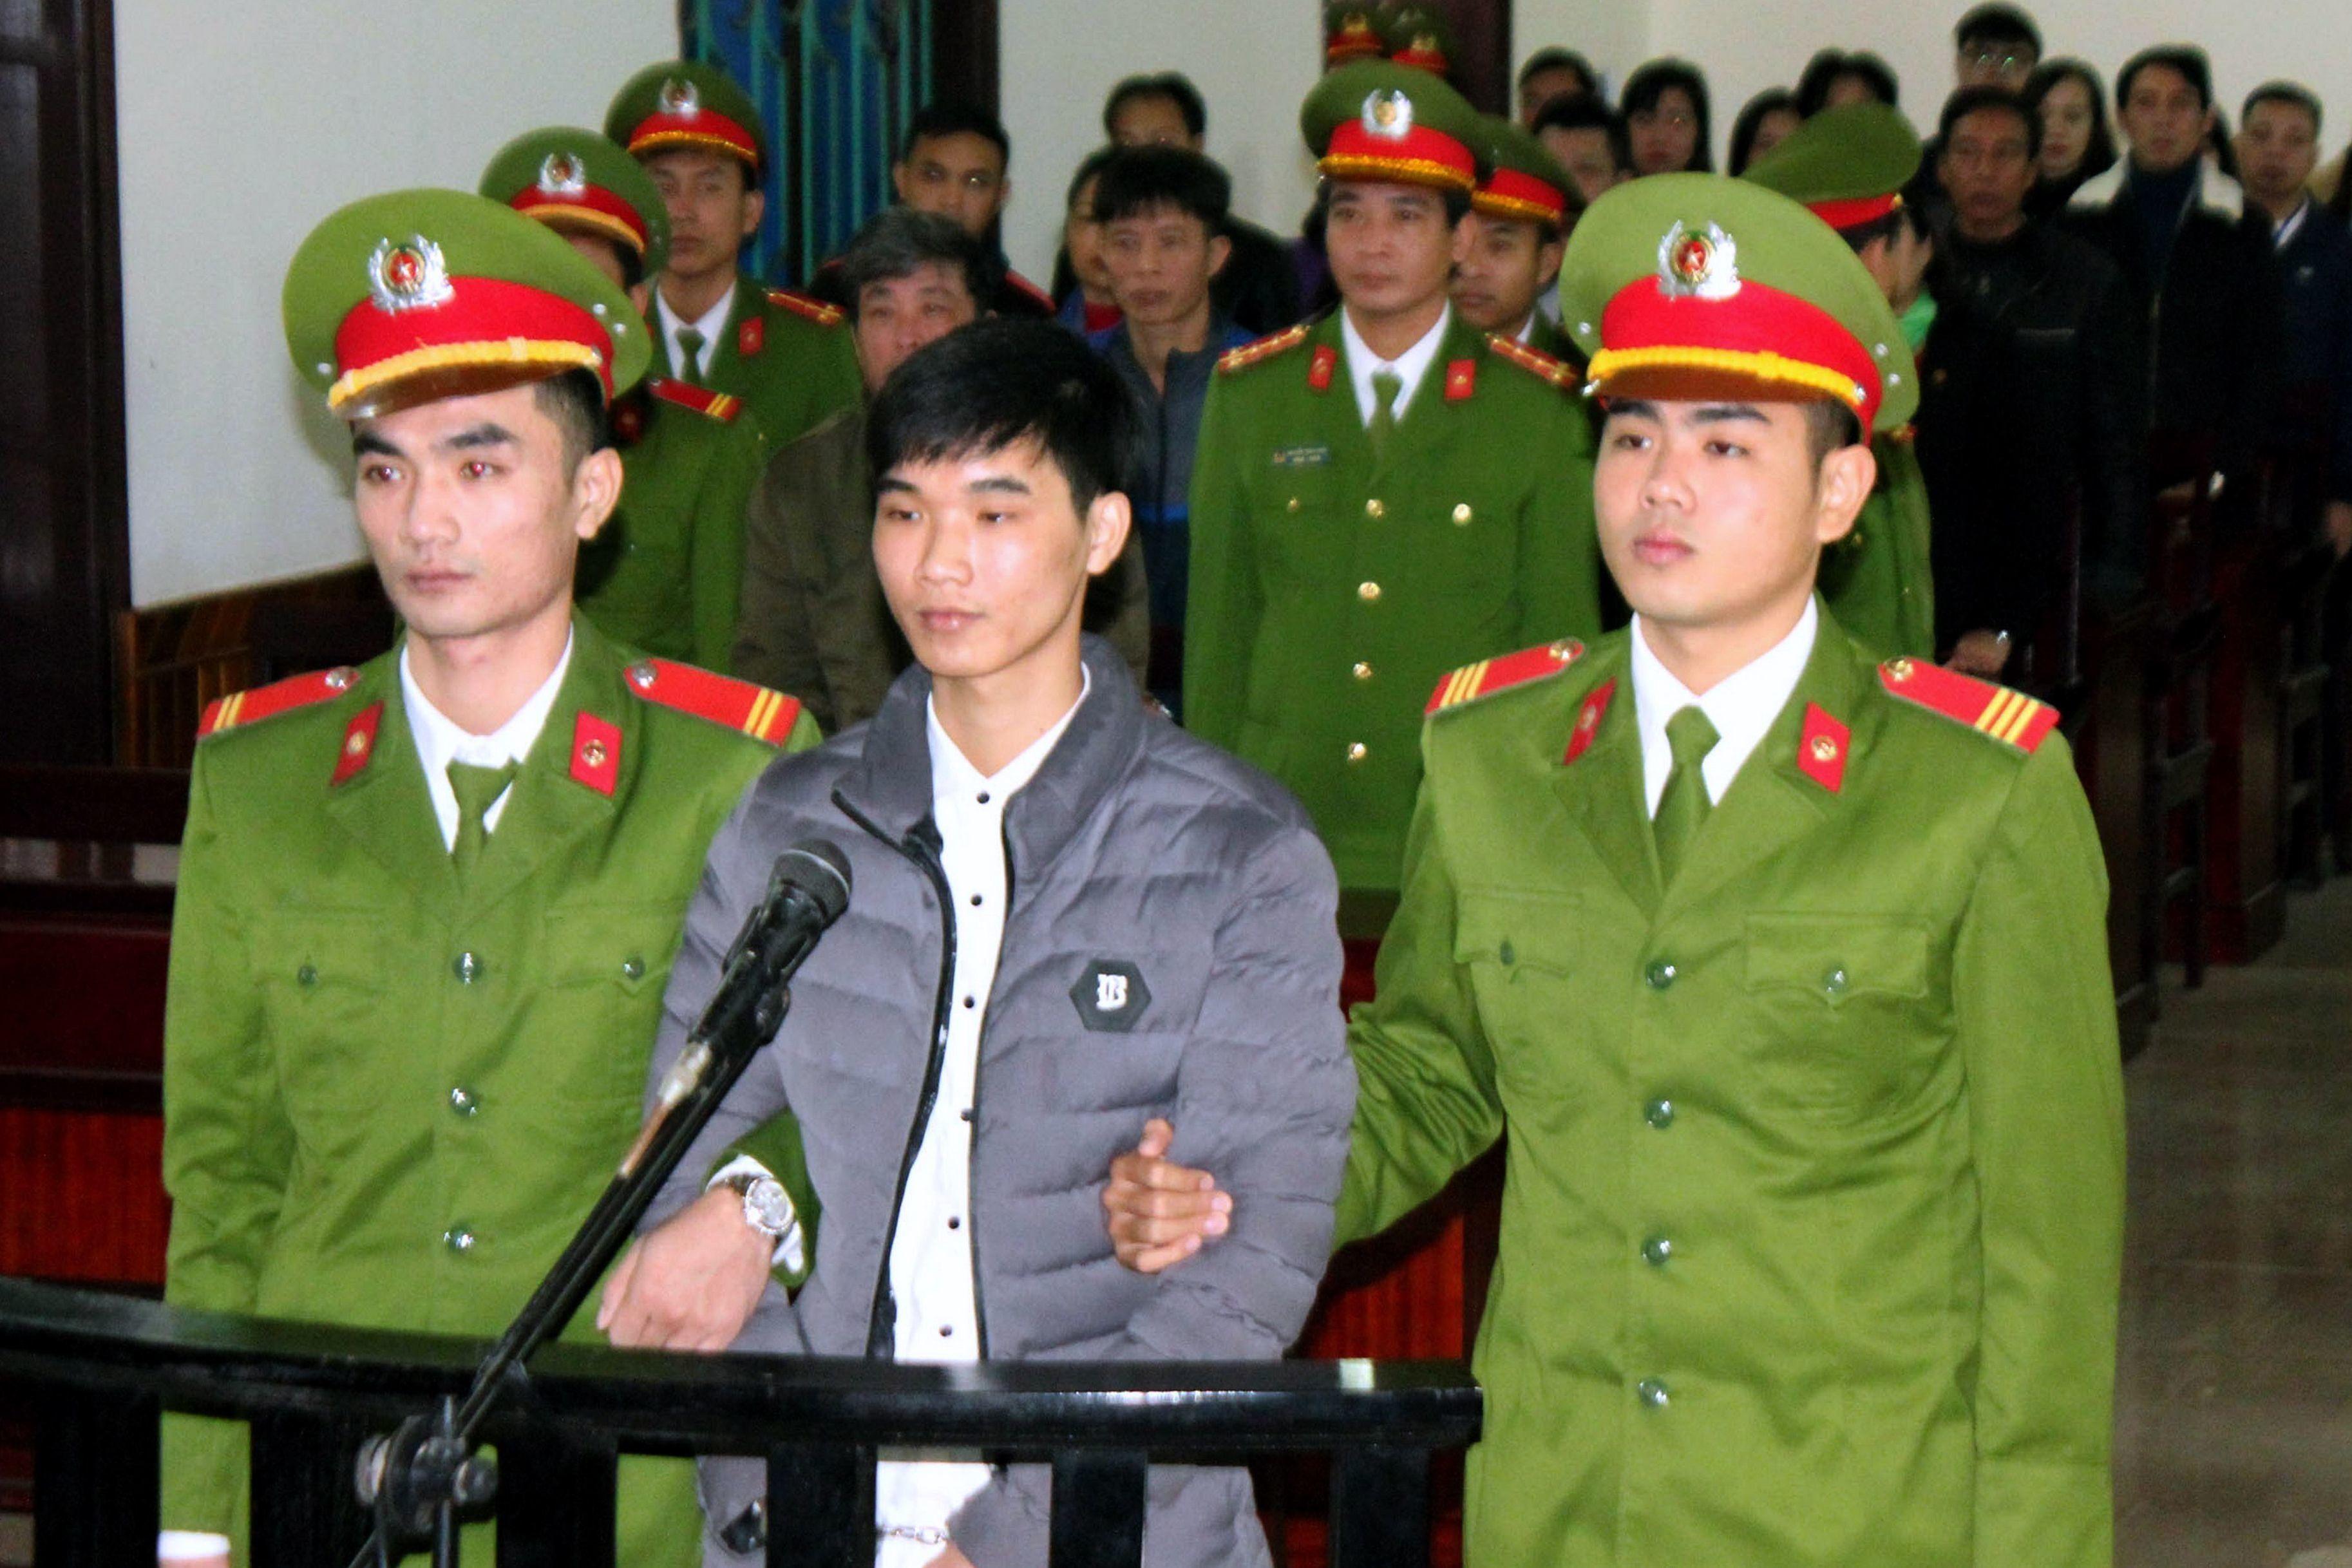 This photo from the Vietnam News Agency taken on November 27, 2017 shows activist Nguyen Van Hoa (C) standing trial at a local people's court in the central province of Ha Tinh. A Vietnamese court on November 27 jailed a blogger for seven years for disseminating anti-state 'propaganda' including articles which supported protests against a Taiwanese firm responsible for a toxic leak. Nguyen Van Hoa, 22, an environmental activist, was accused of instigating protests against authorities via his Facebook account, mainly following the 2016 toxic leak at a steel factory operated by Taiwan's Formosa. / AFP PHOTO / Vietnam News Agency / Vietnam News Agency        (Photo credit should read VIETNAM NEWS AGENCY/AFP/Getty Images)